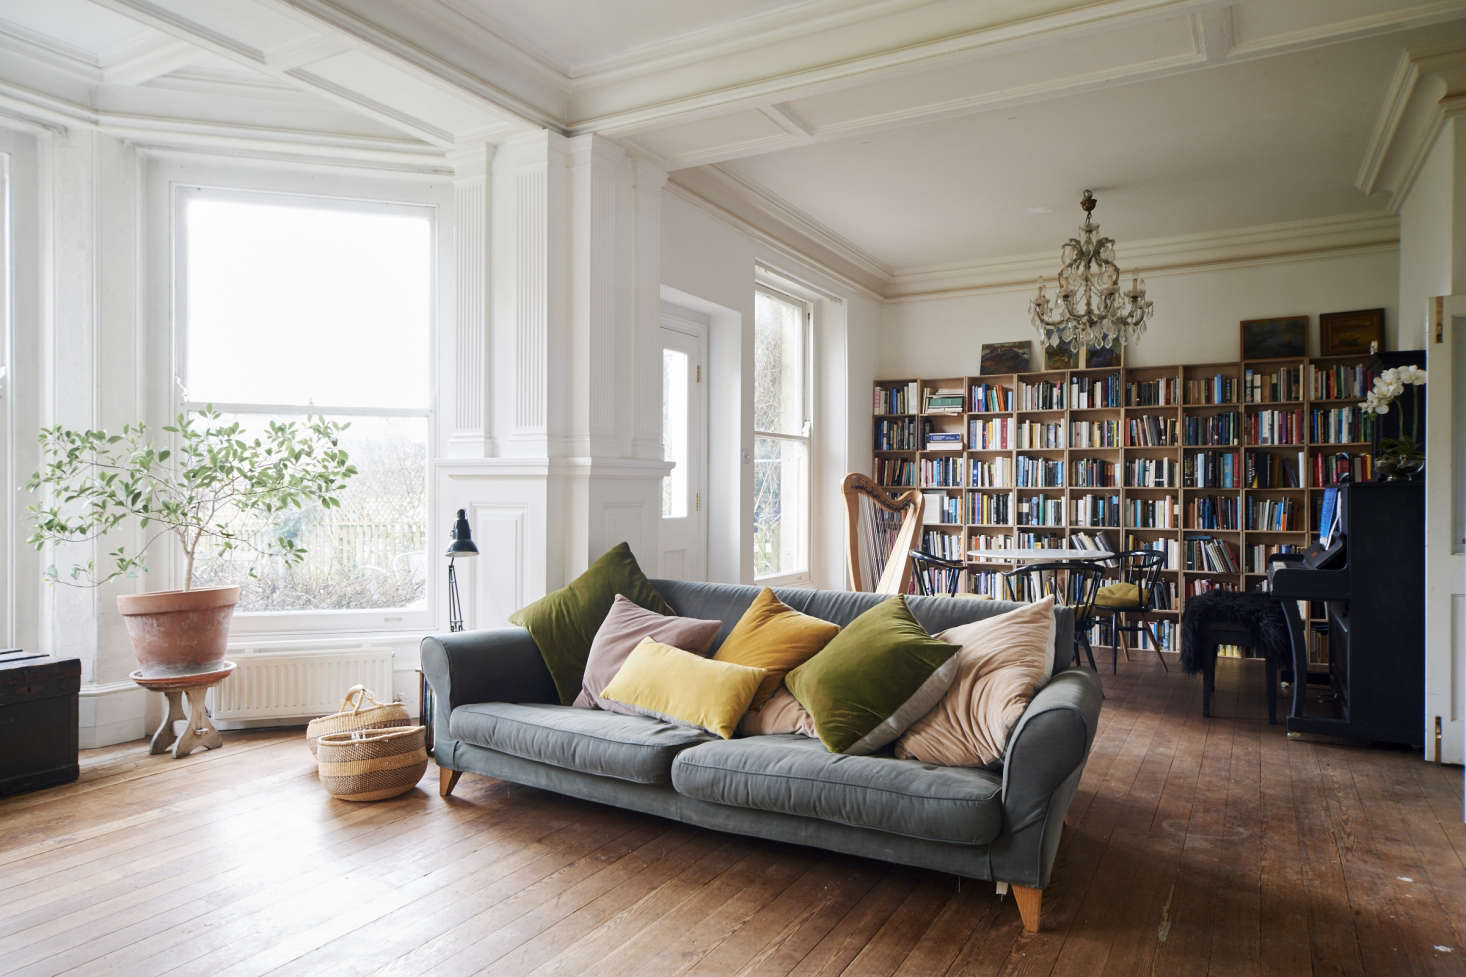 Photograph fromOn the Market: A Historical House Reimagined for a Modern Family in Stroud, England.